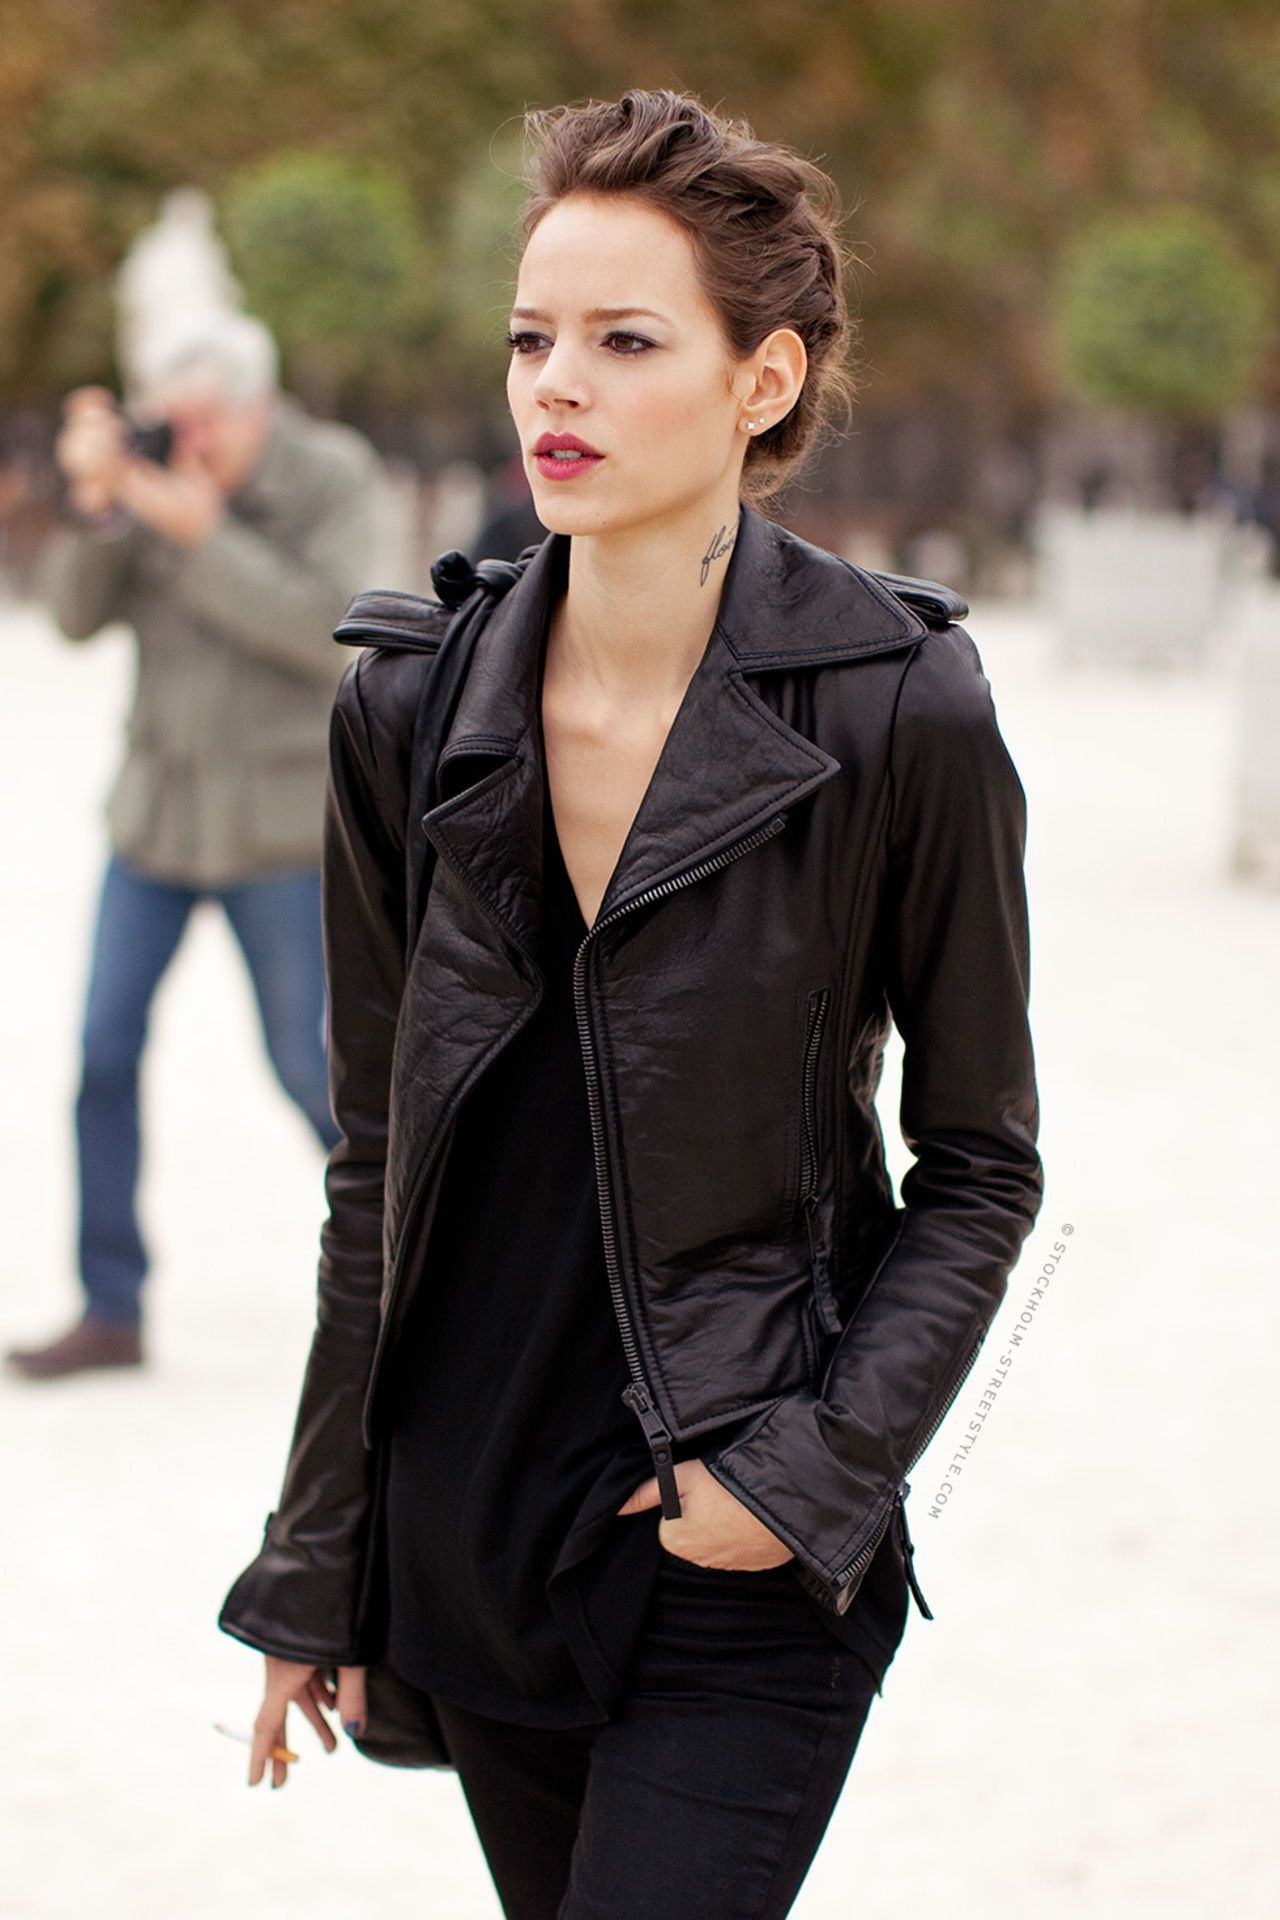 Biker Jacket Worn by Freja Beha Erichsen The beautiful Danish model Freja  Beha Erichsen caught candidly sporting a biker jacket. You can get.